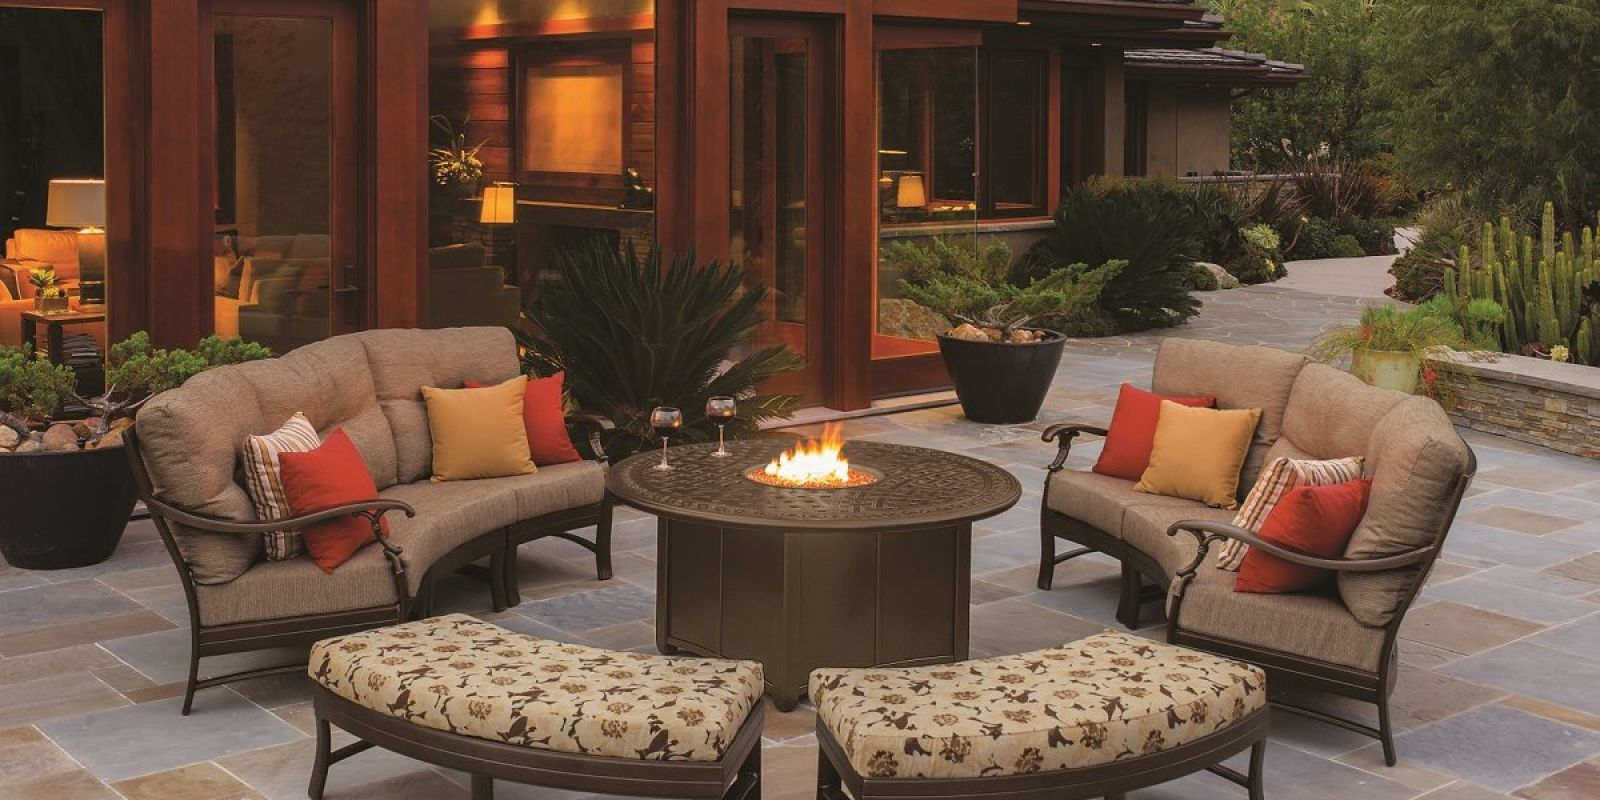 Outdoor Patio Design Specialist | American Casual Living on Porch & Patio Casual Living id=73818